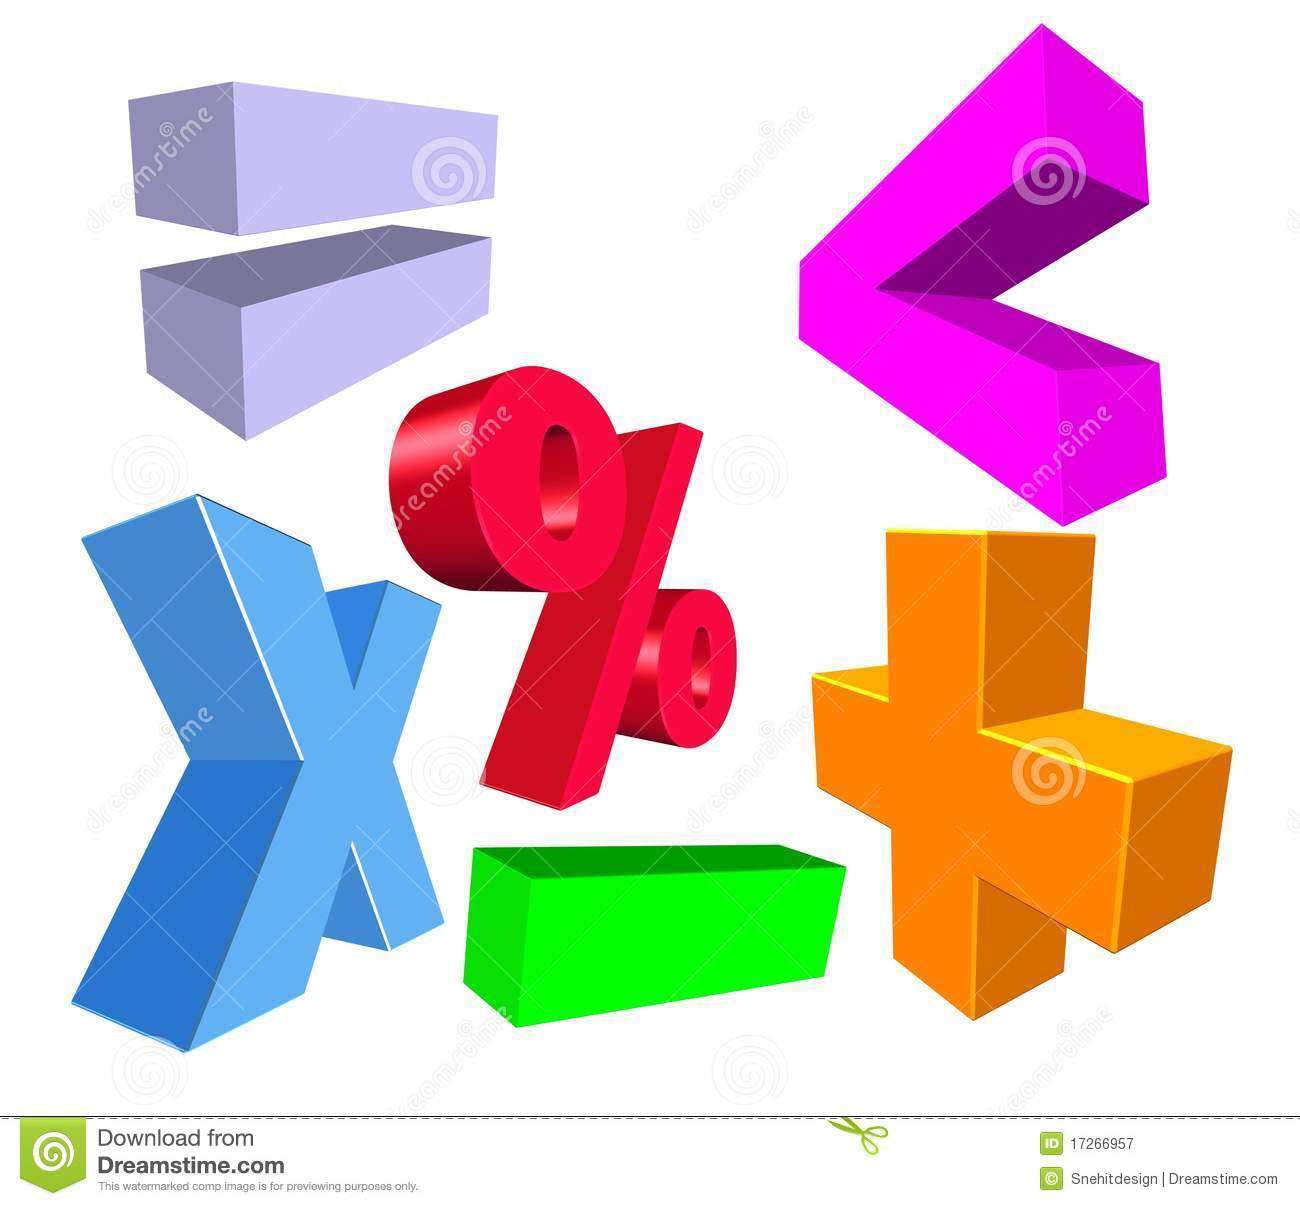 3d math symbols stock illustration illustration of signs 17266957 3d math symbols biocorpaavc